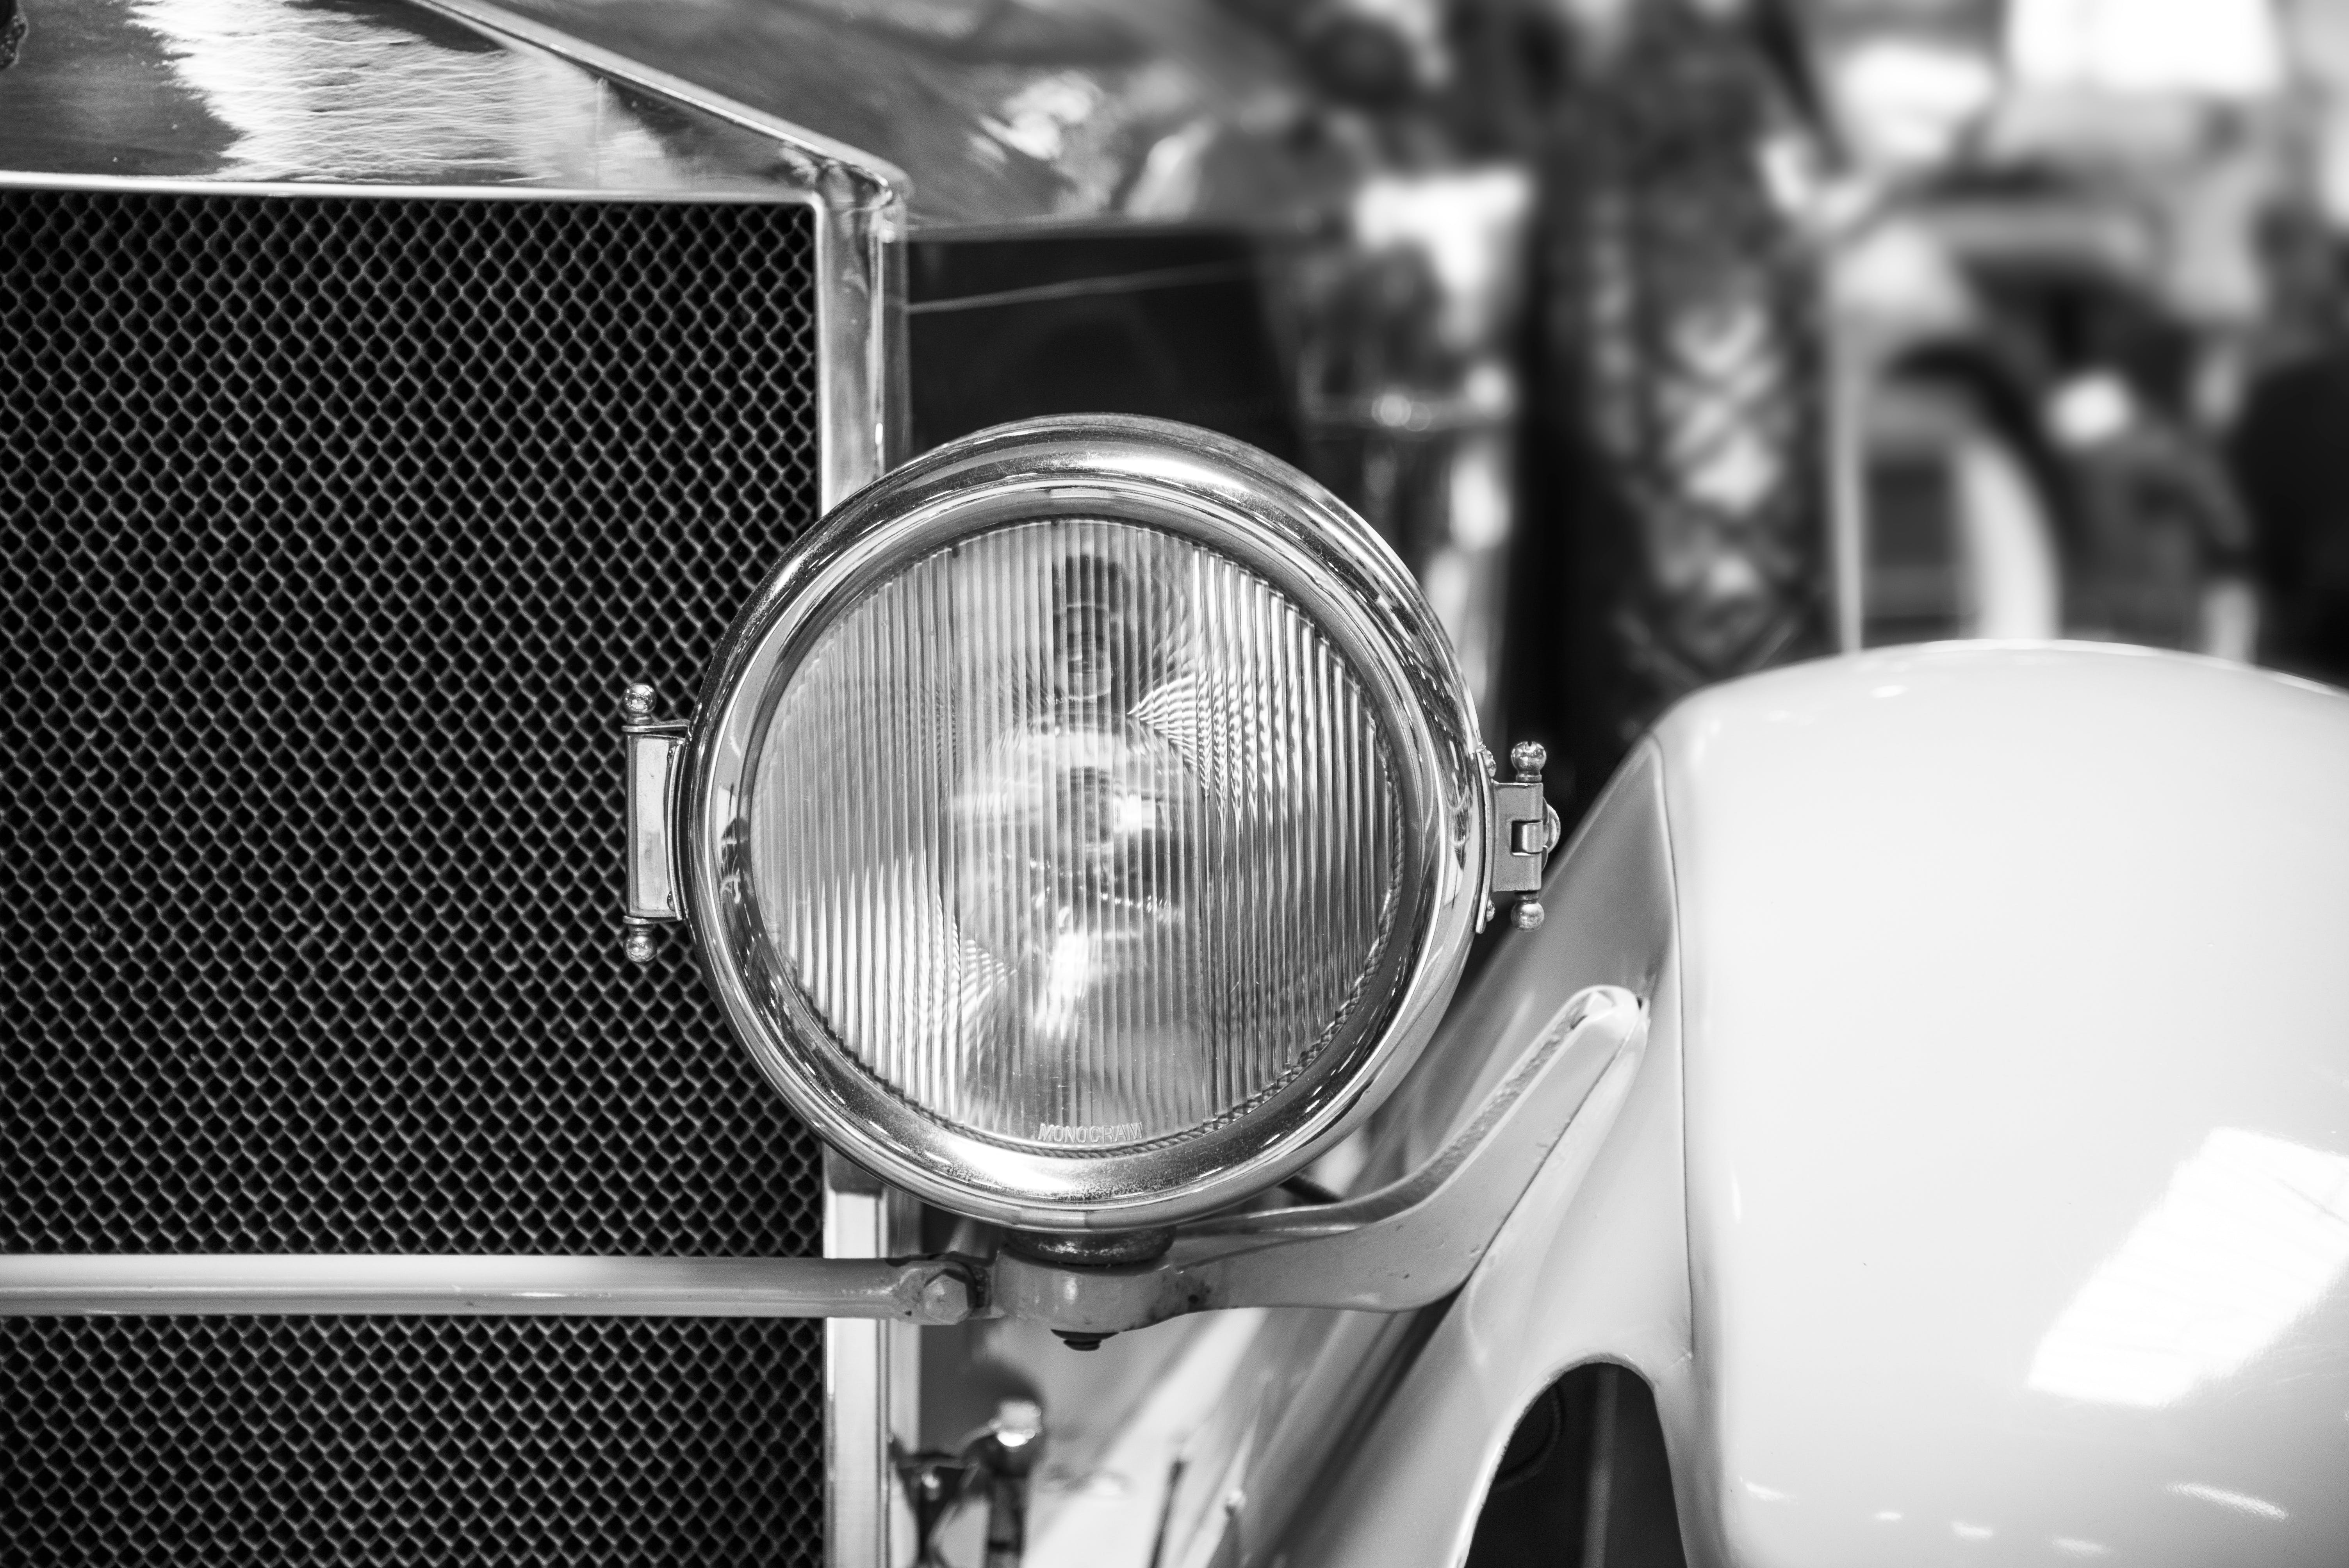 Classic Car Headlight Grayscale Photo